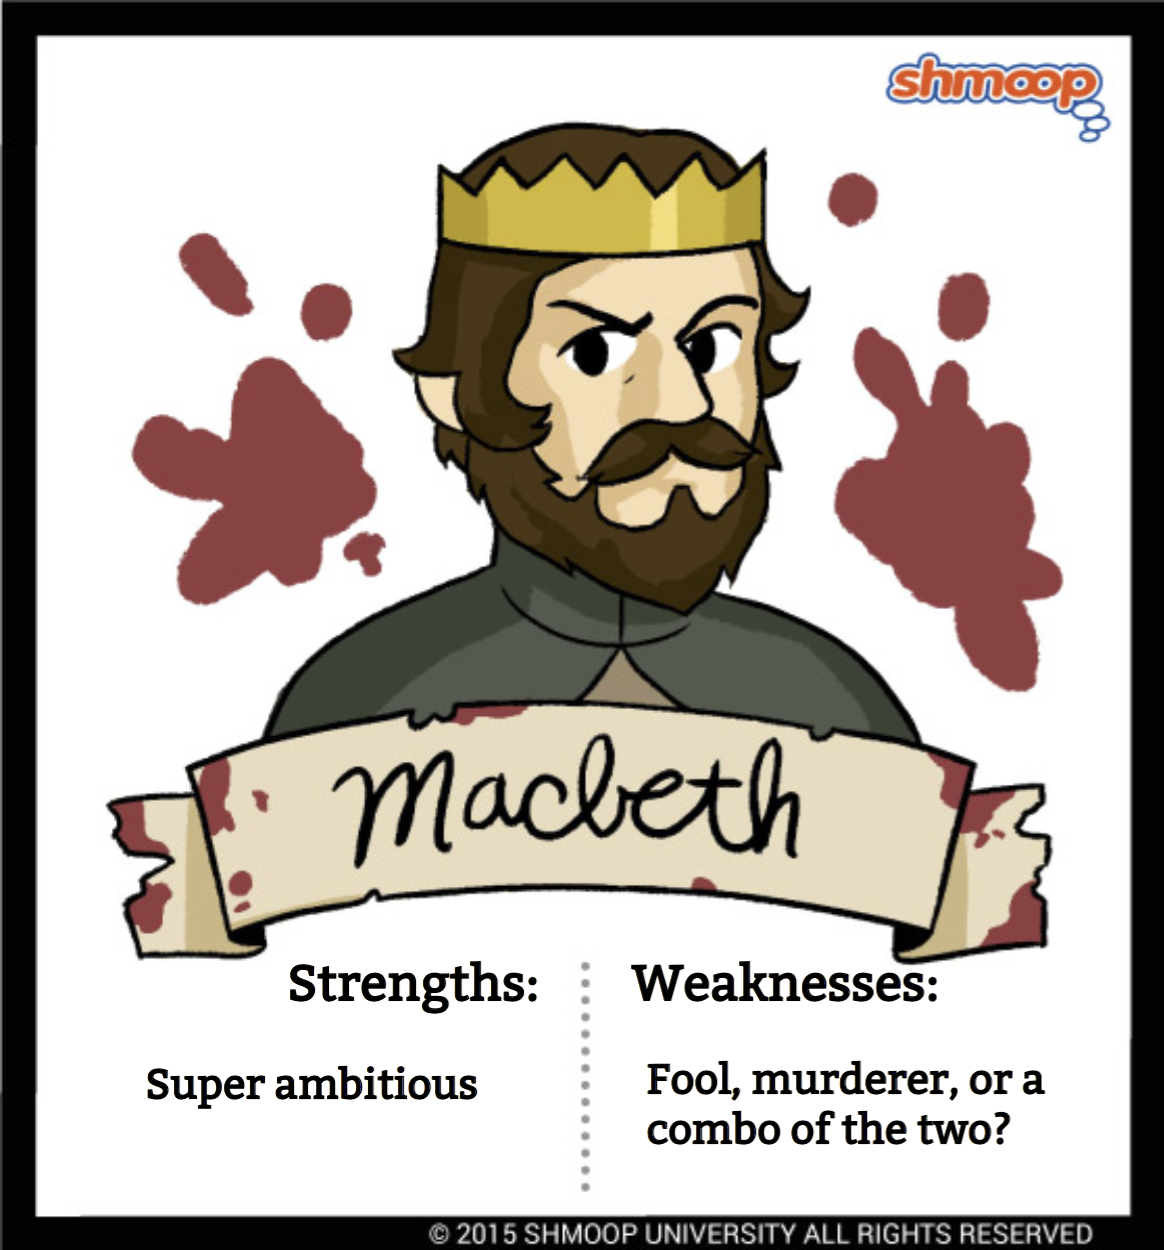 an analysis of the personality of macbeth a play by william shakespeare This is the most blameless the crowd sees macbeth in the play  shakespeare  exhibits a decrease in macbeth's character all through the play,.